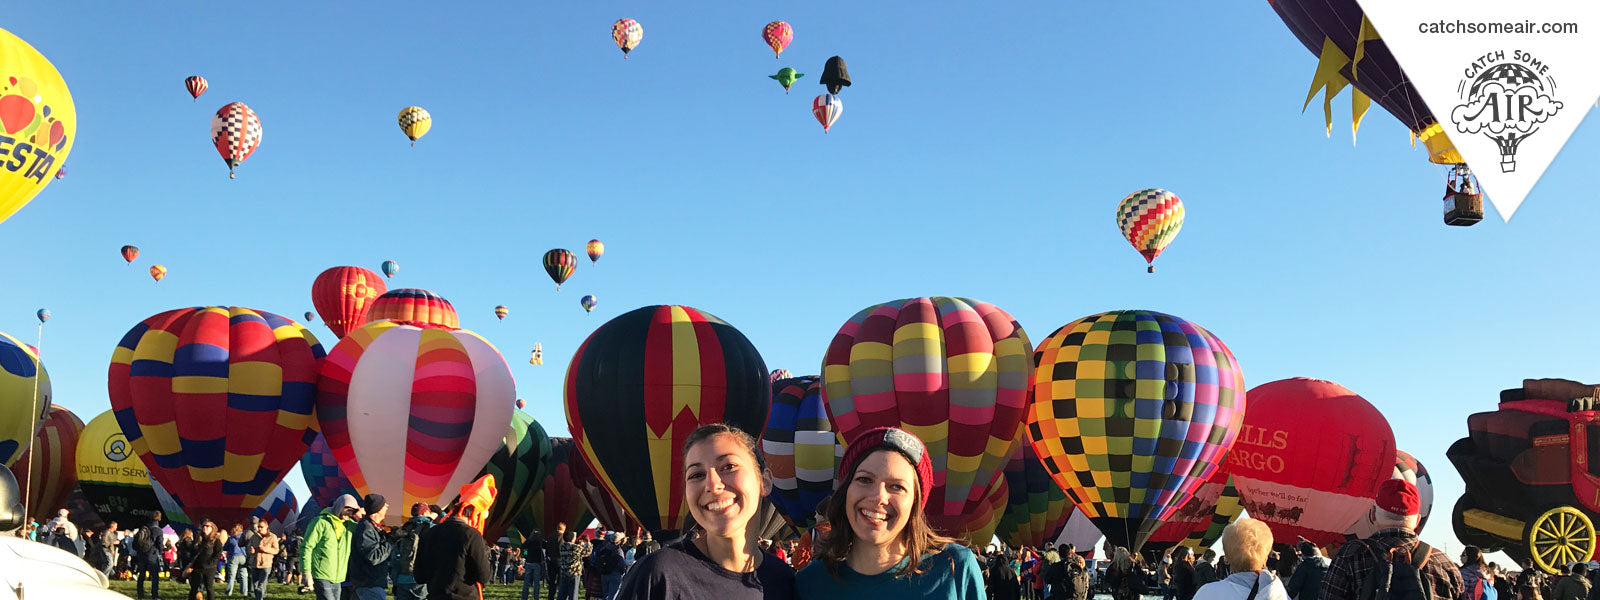 #64: Attend the largest hot air balloon festival in the world.